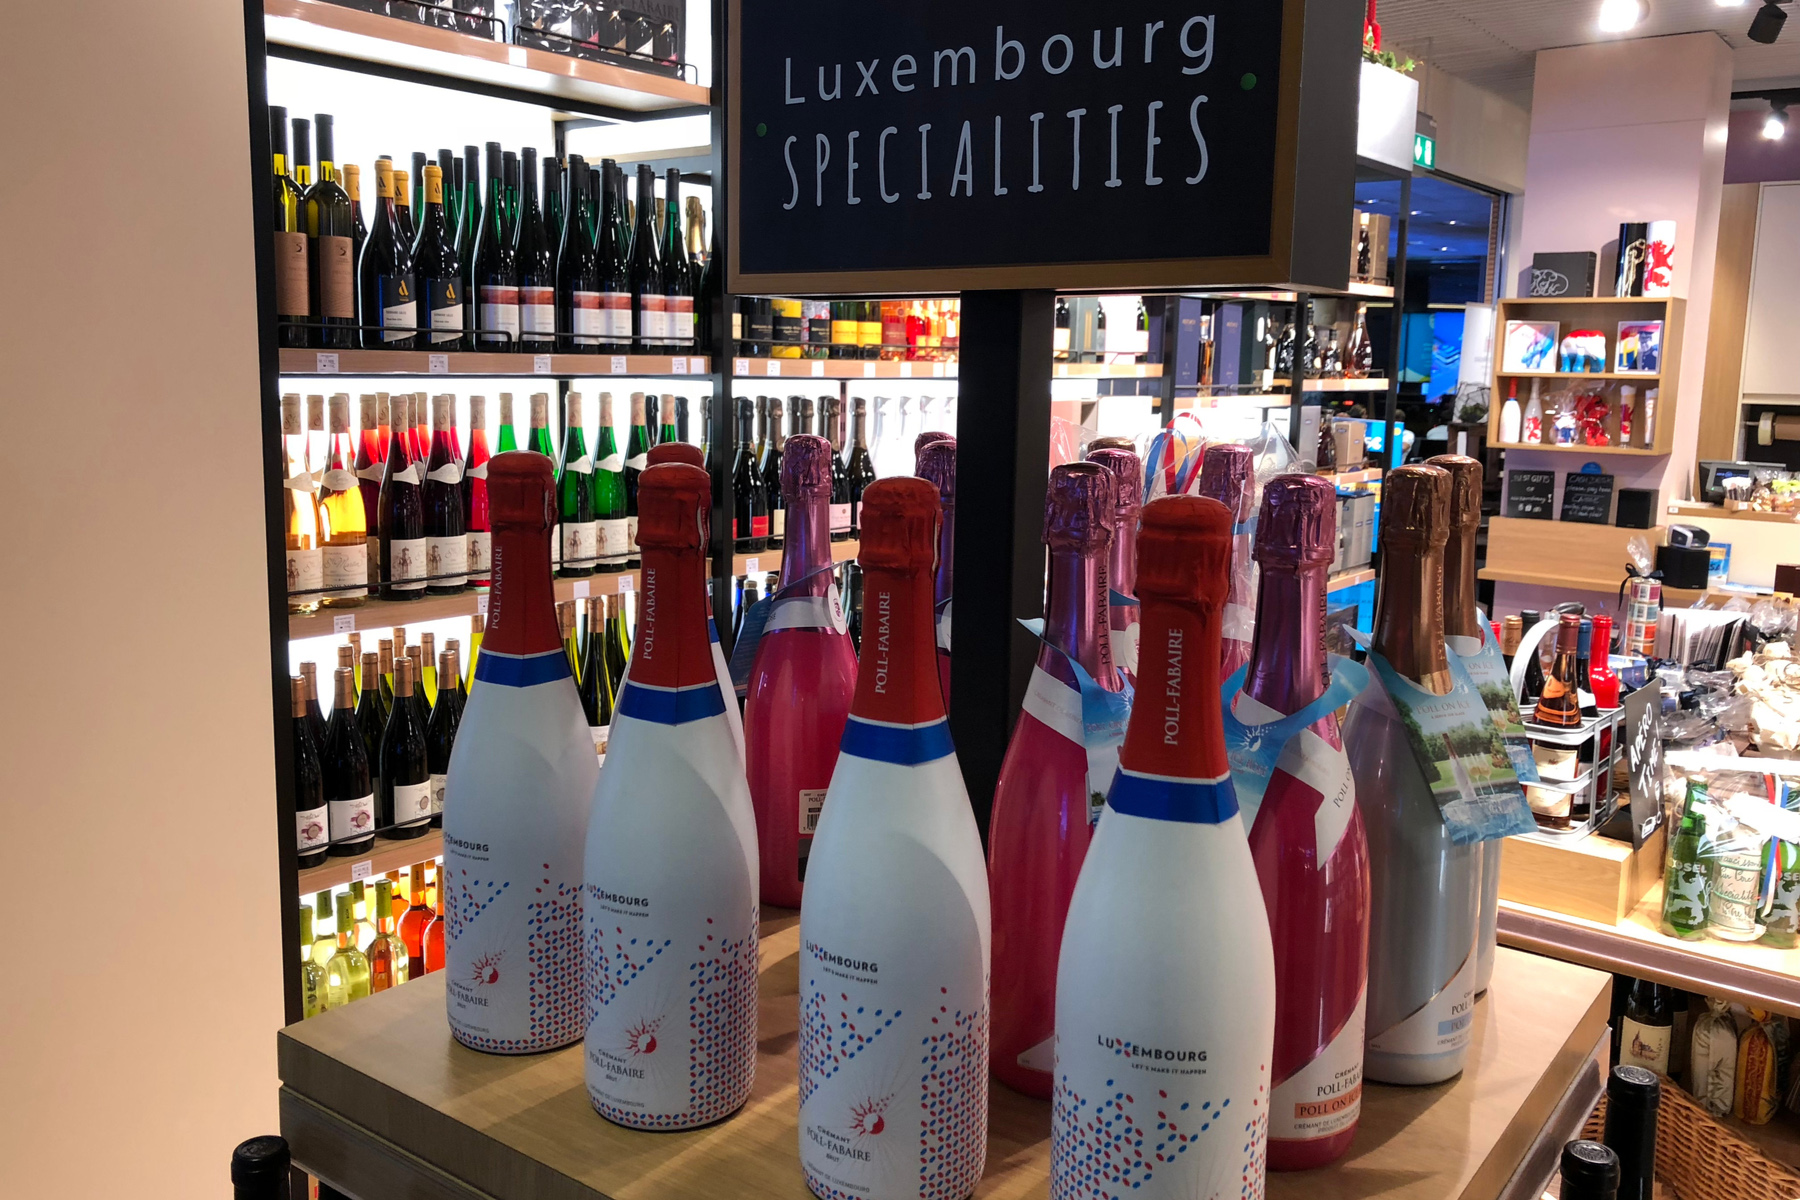 Sparkling wine from Luxembourg